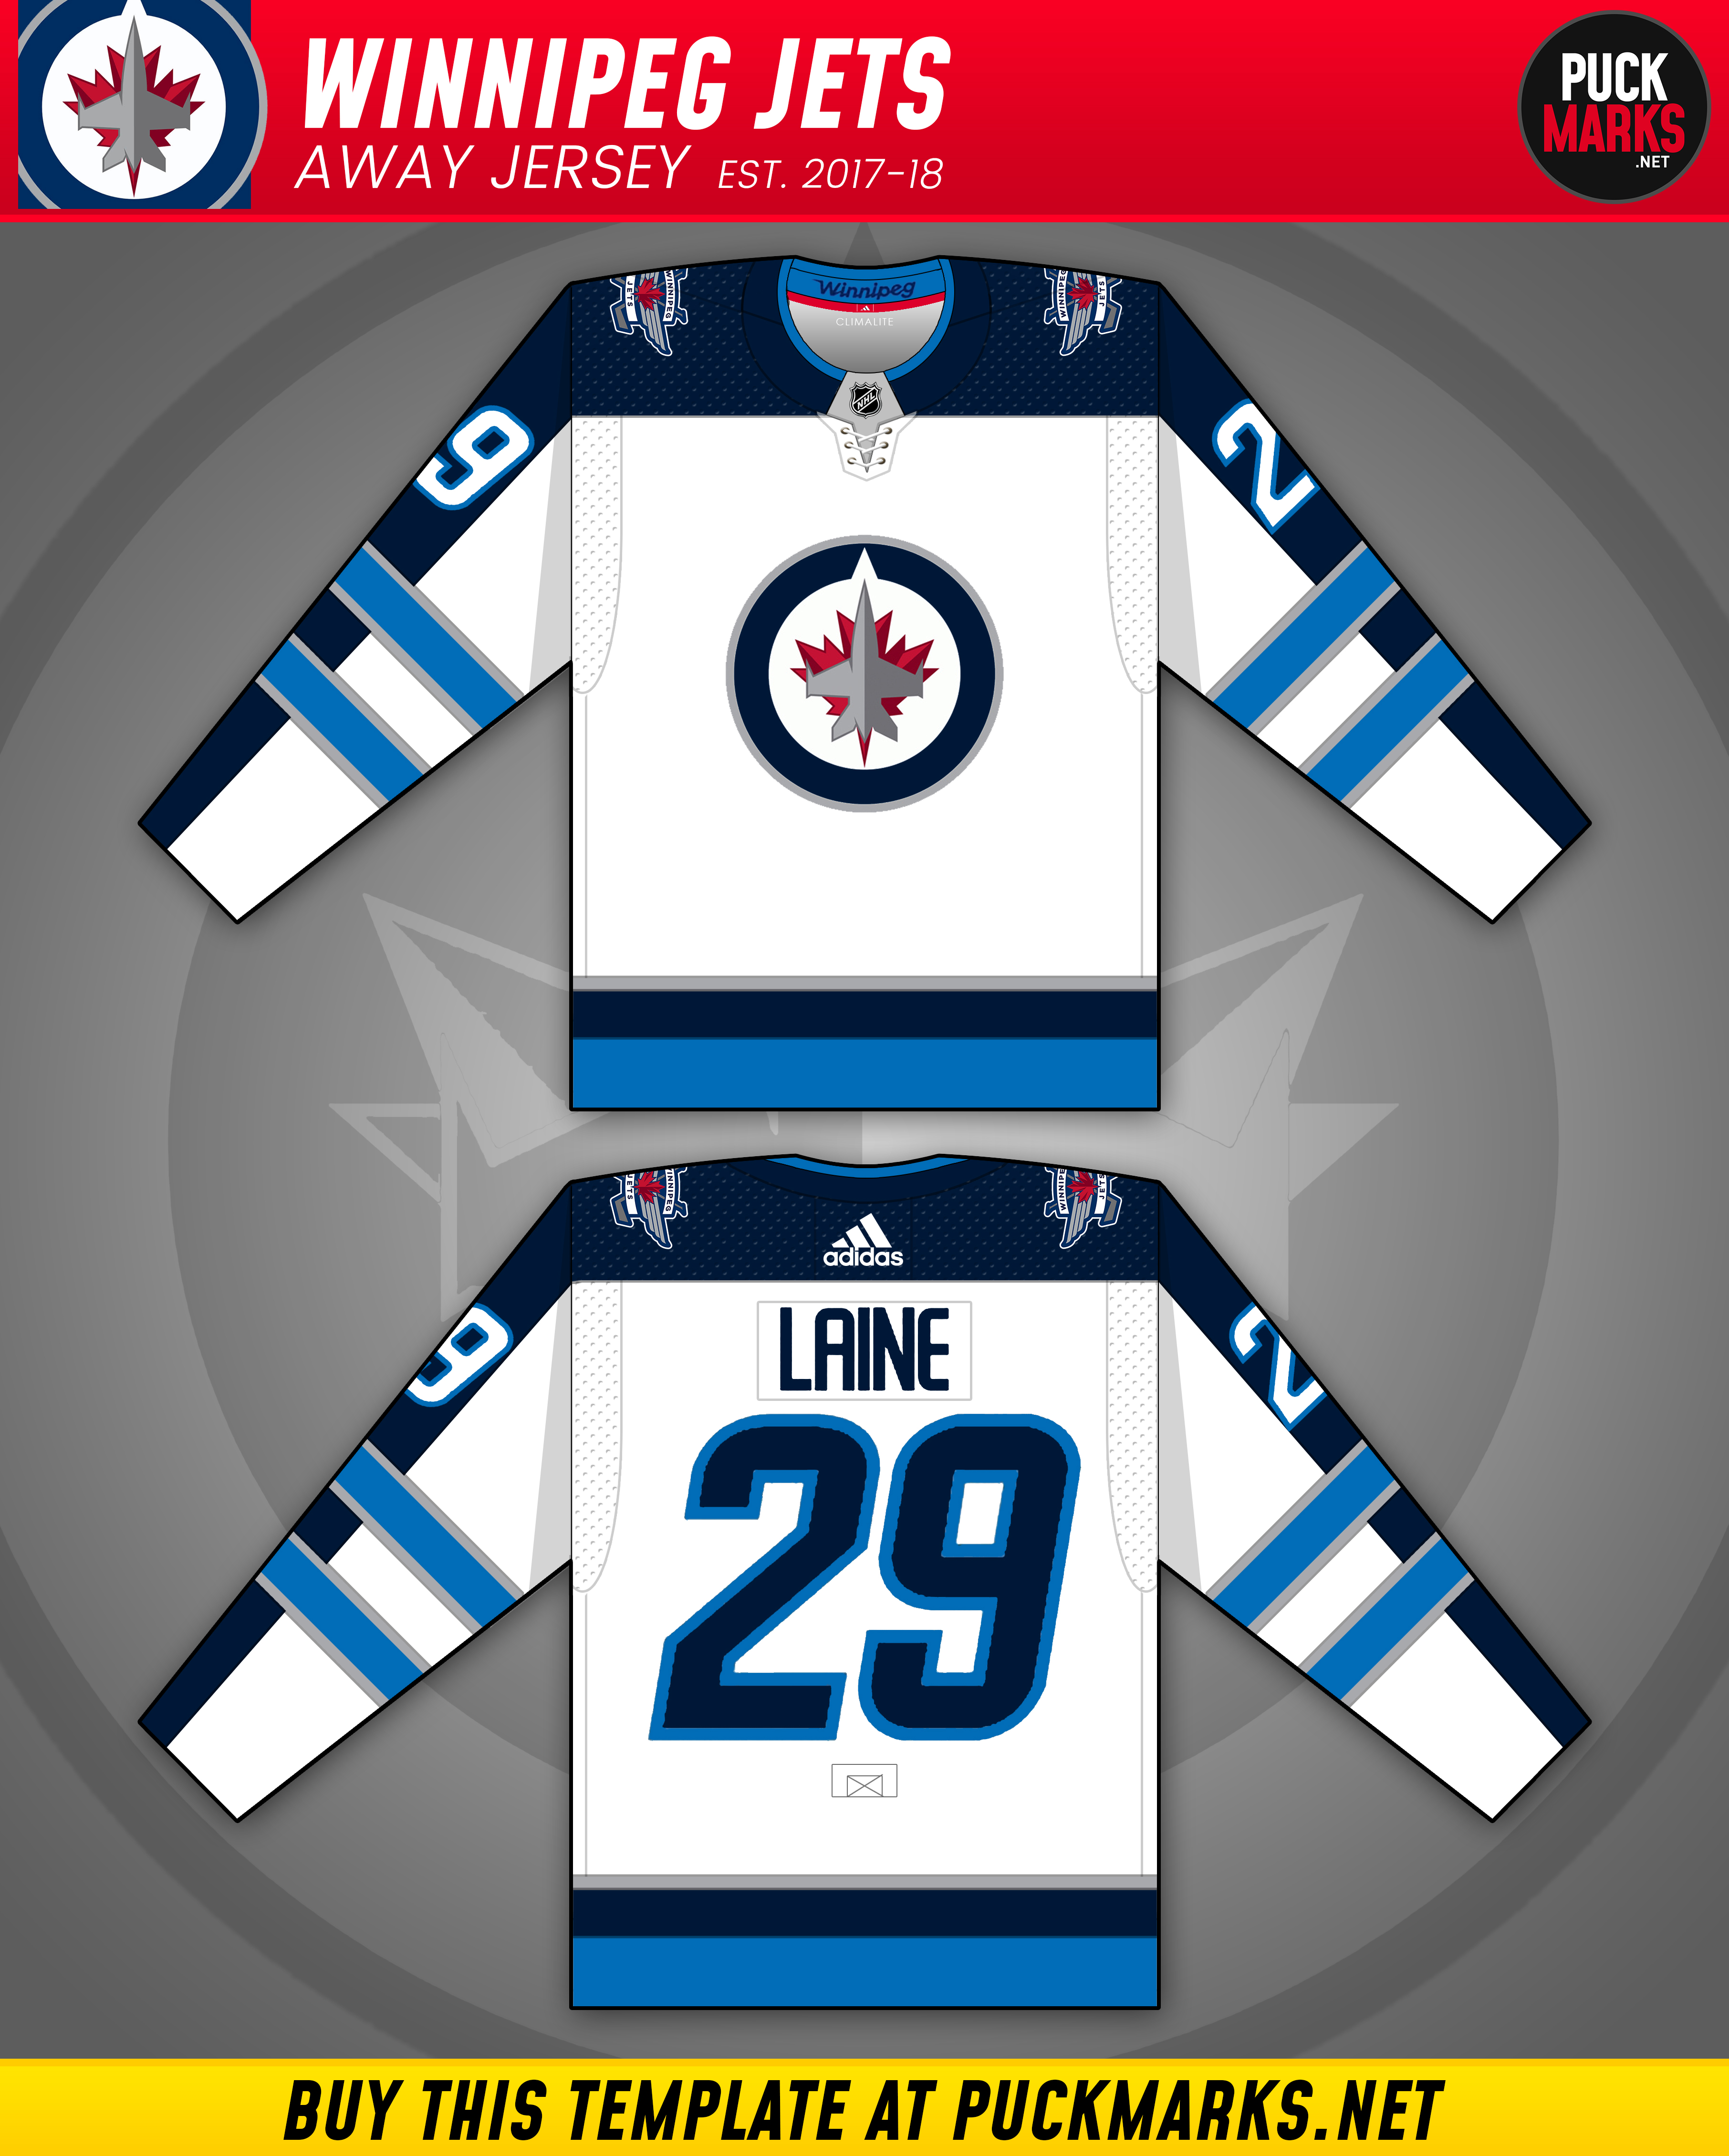 WPG_Away_PMTemplate copy